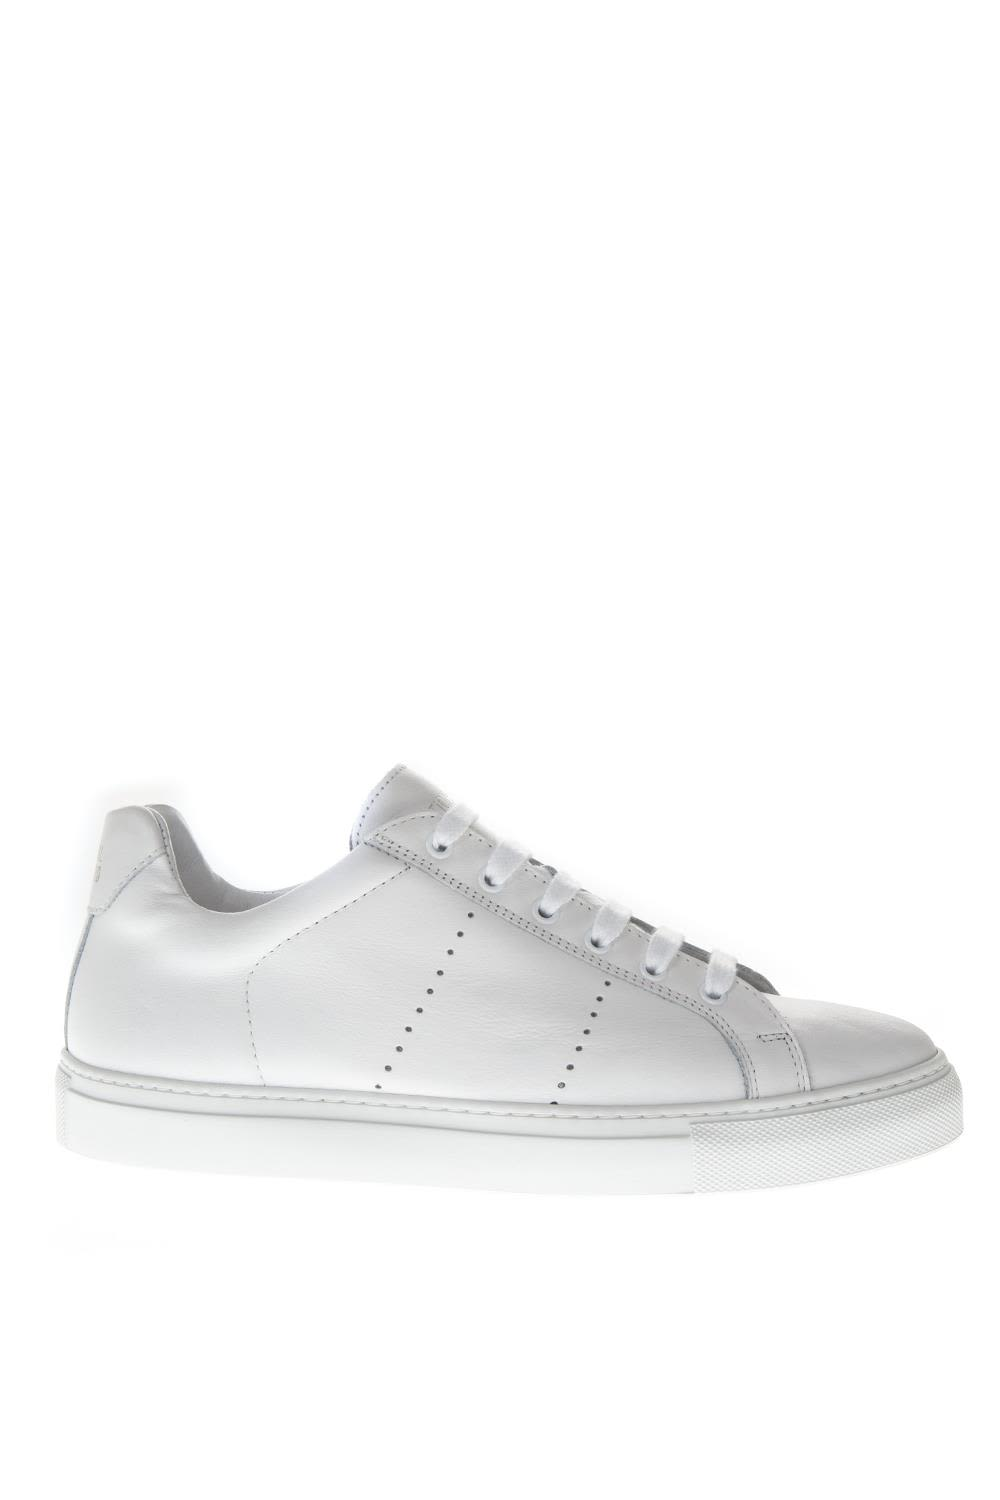 NATIONAL STANDARD White Holes Leather Sneakers